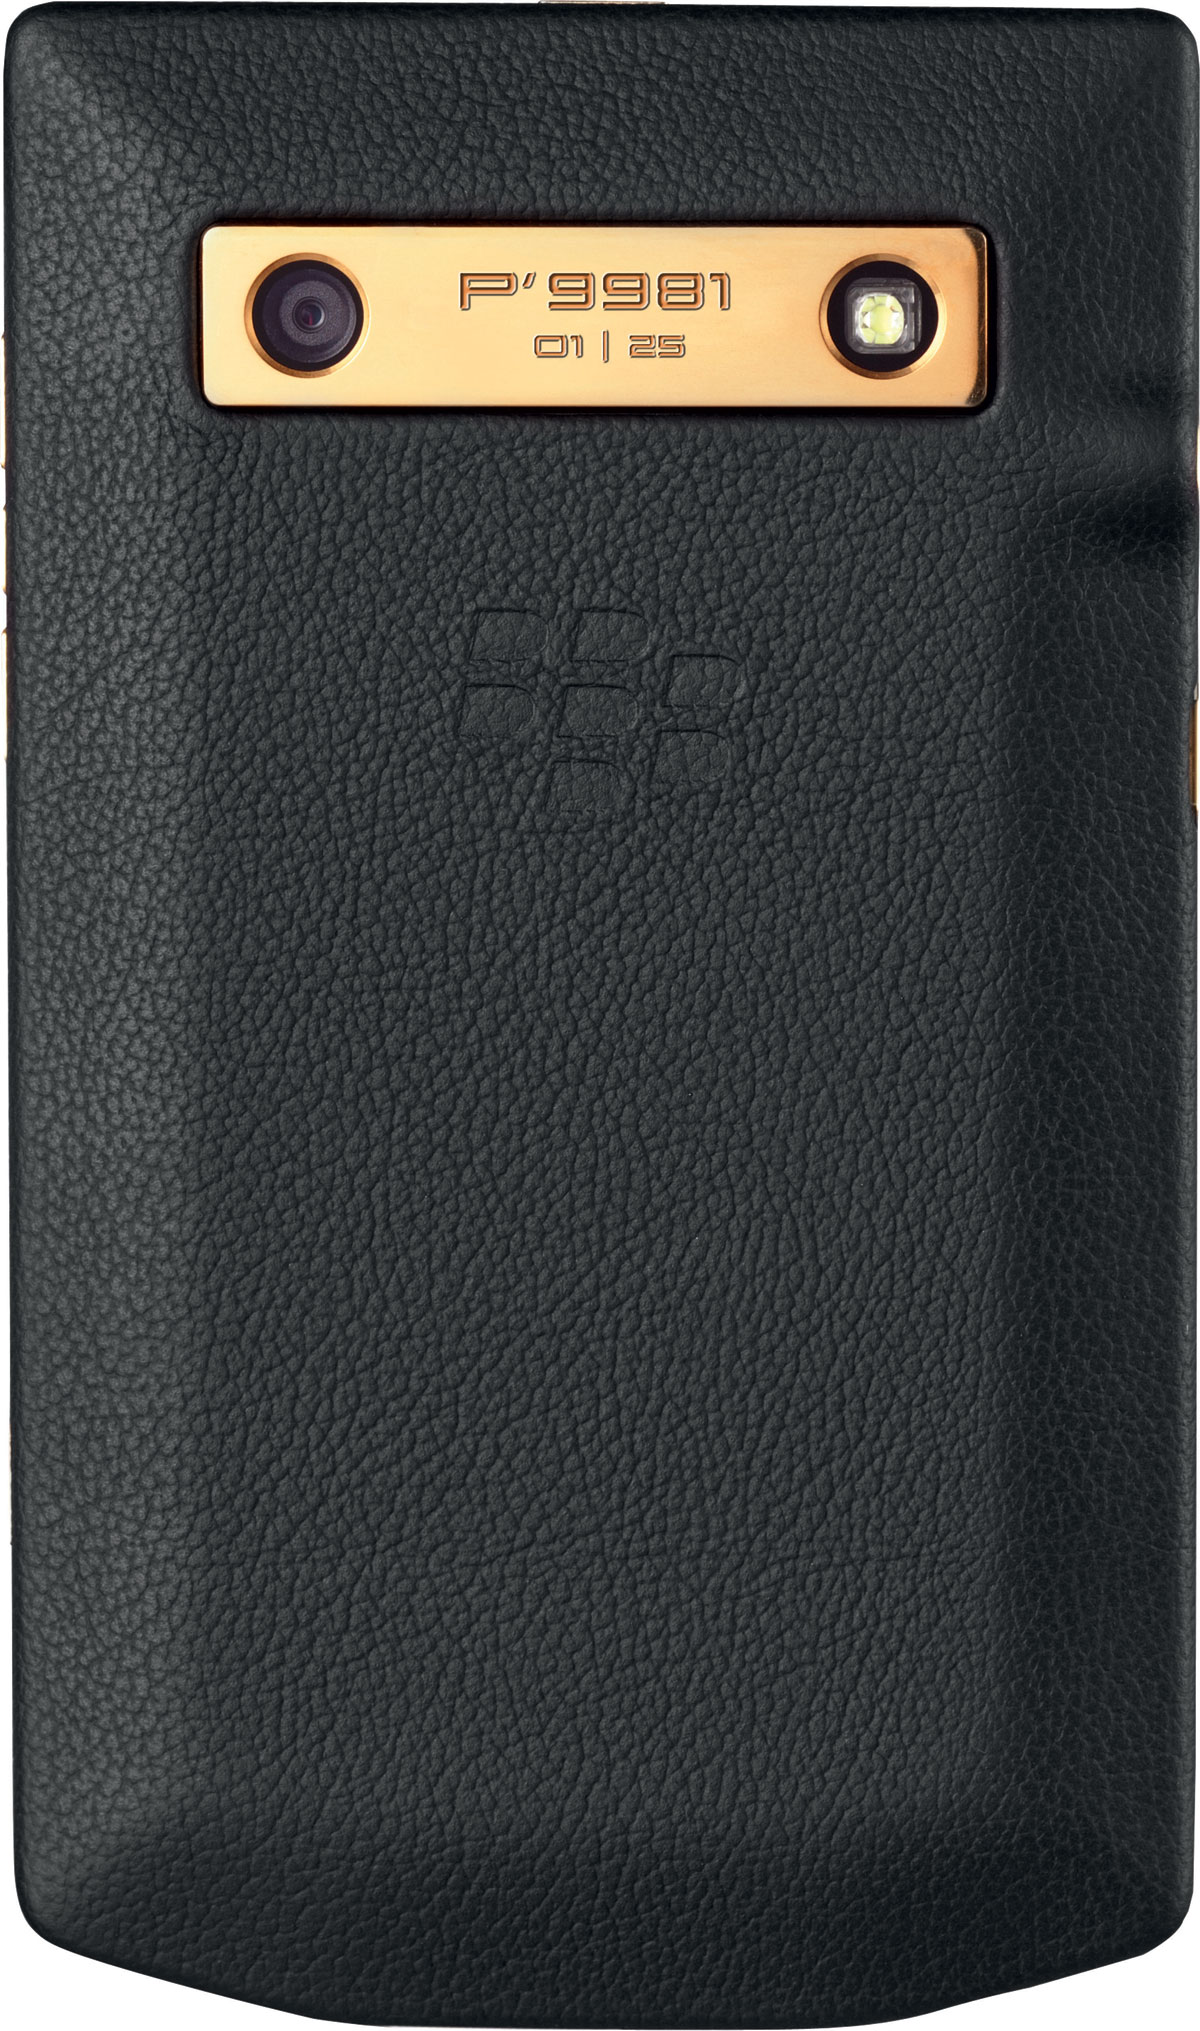 not randomized blackberry porsche design p 9981 gold where the Surface